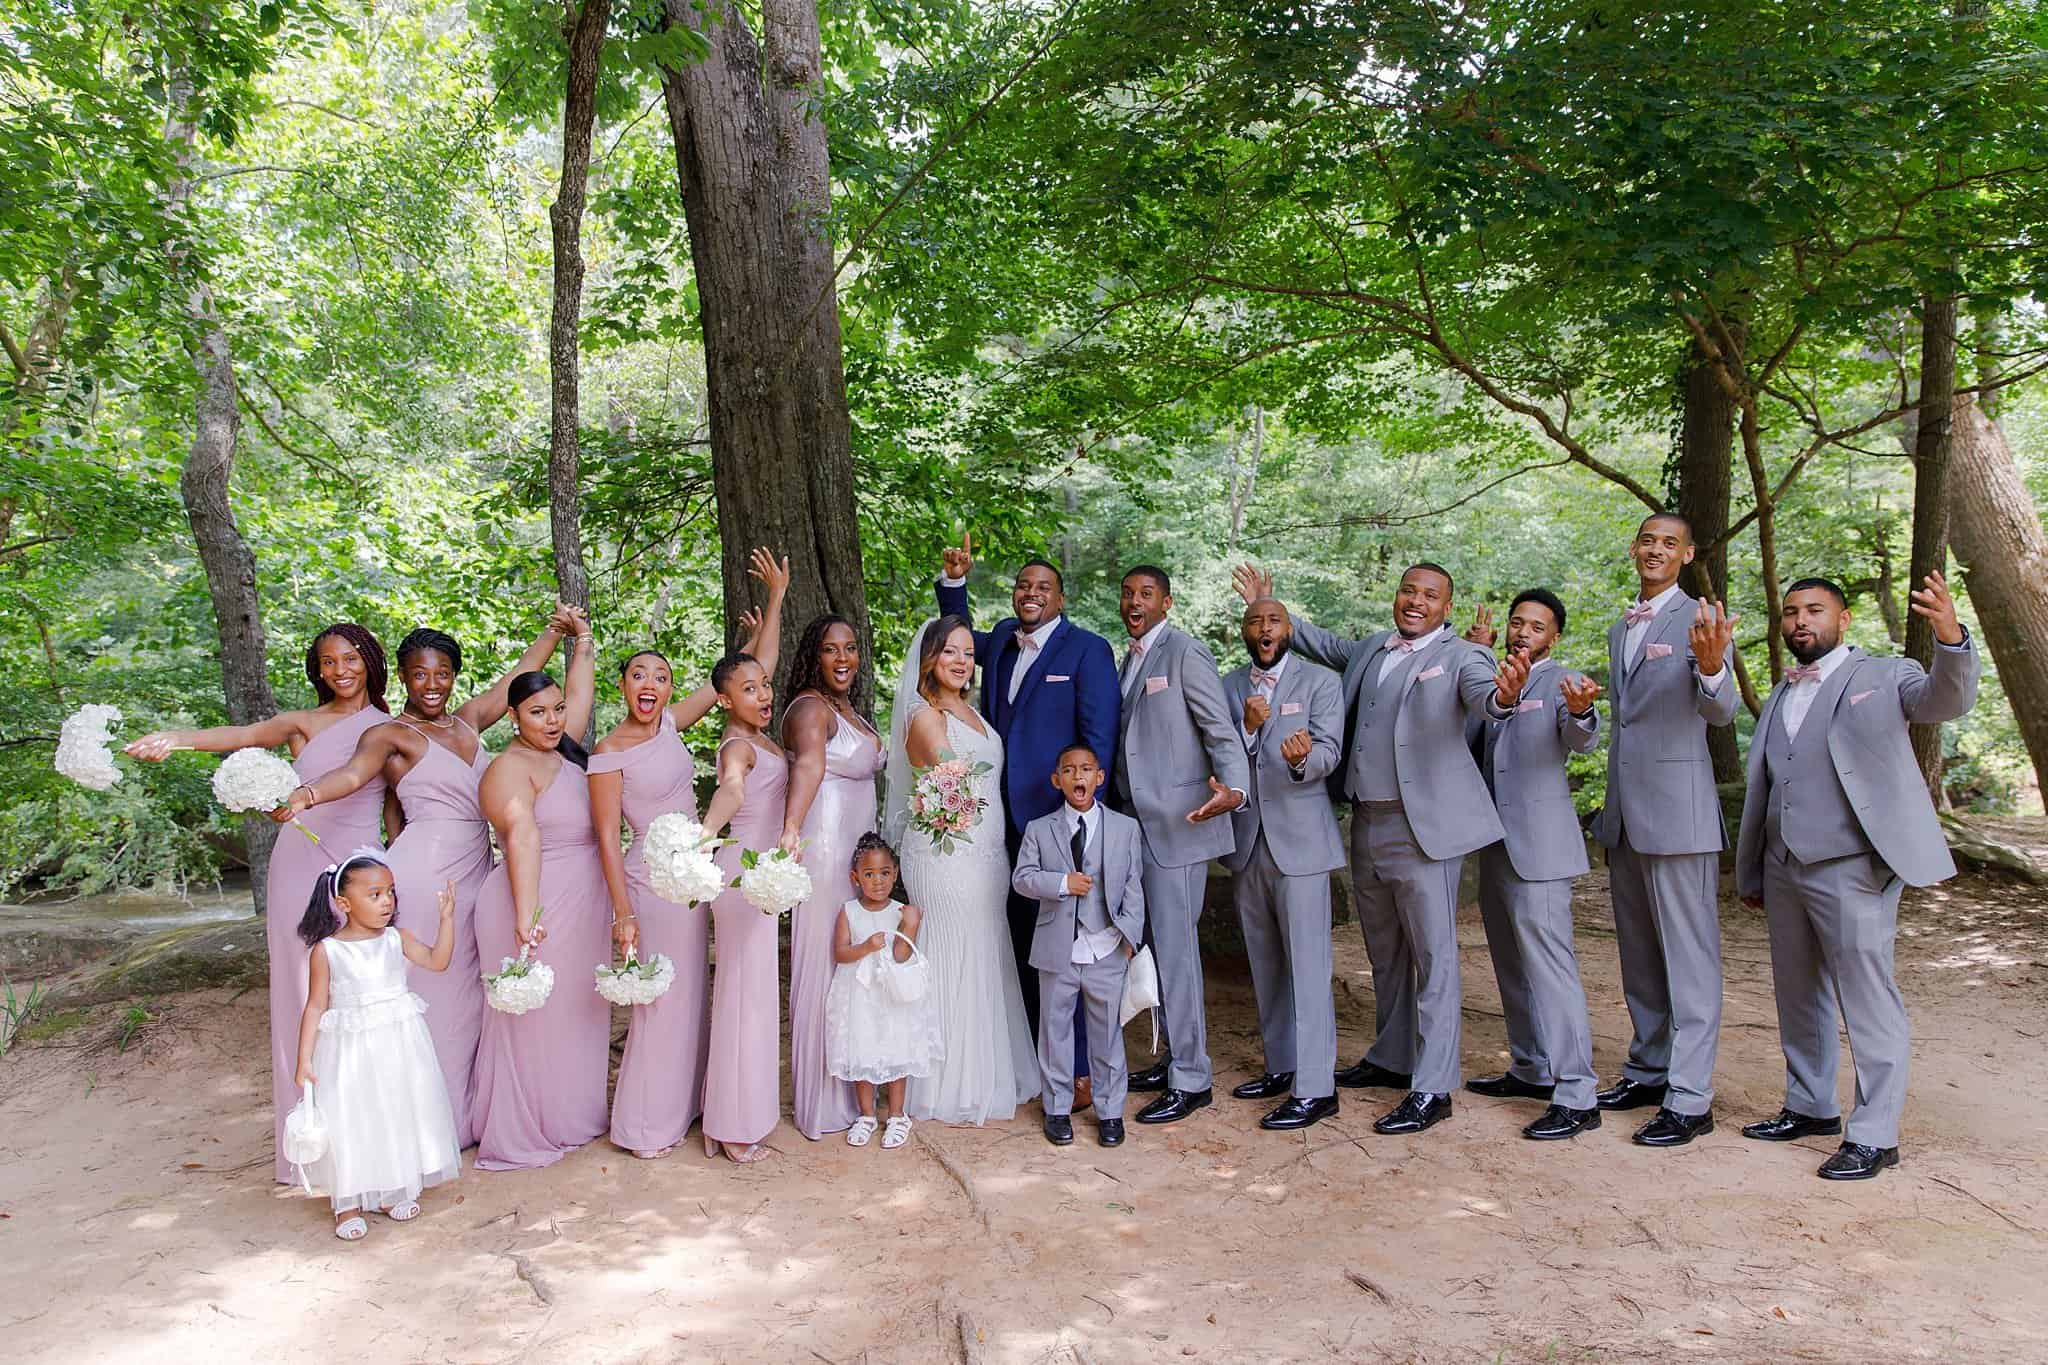 Bridesmaids in lilac bridesmaids dresses holding white hydrangea flowers with groomsmen wearing soft gray suits with lilac bow ties posing outdoors with bride and groom outdoors with flowergirls and ringbearer